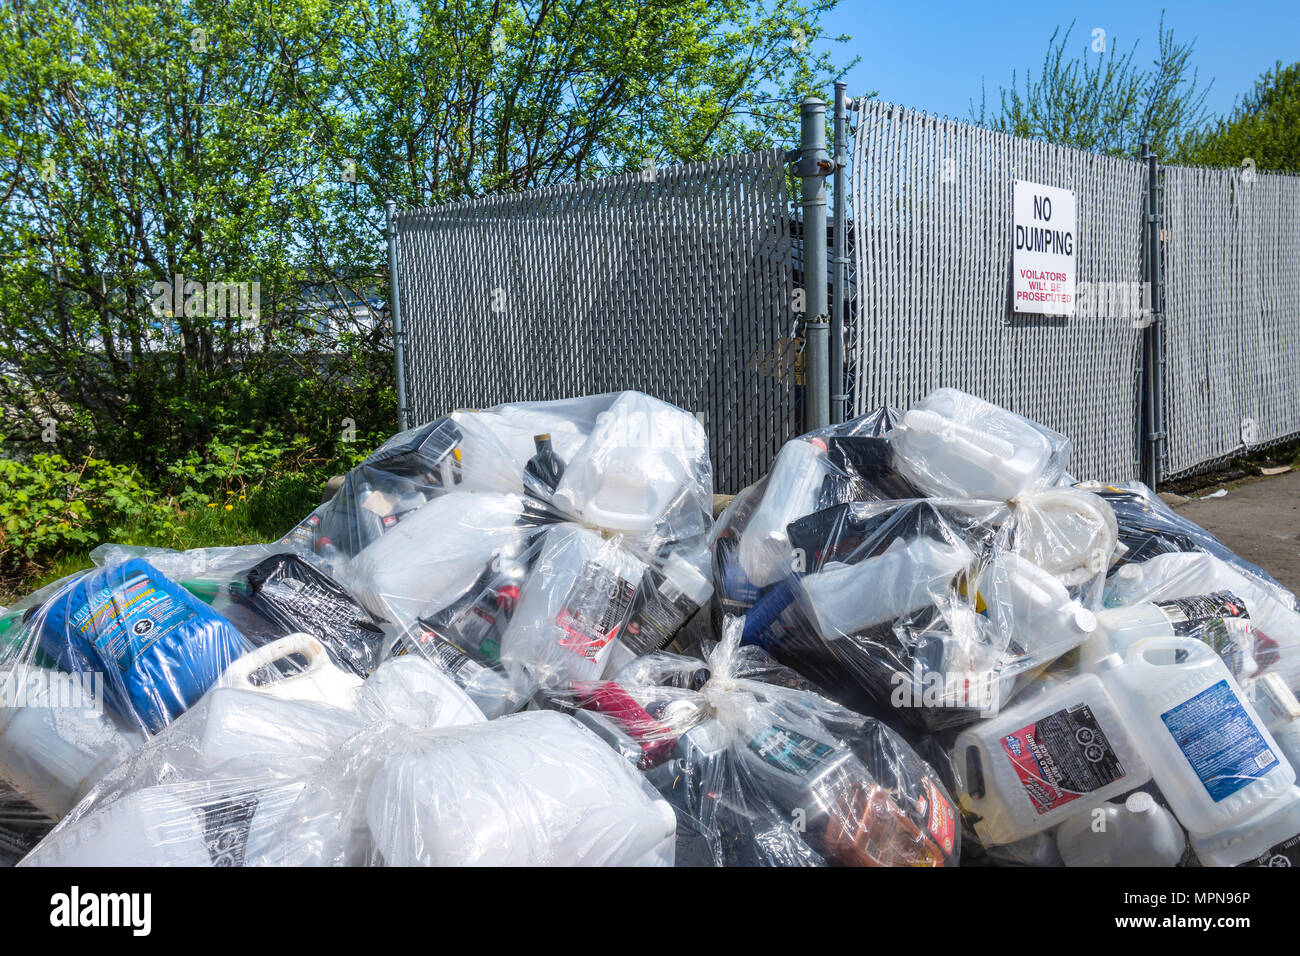 Rubbish dumped next to no dumping sign - Buckley Bay, British Columbia, Canada. - Stock Image